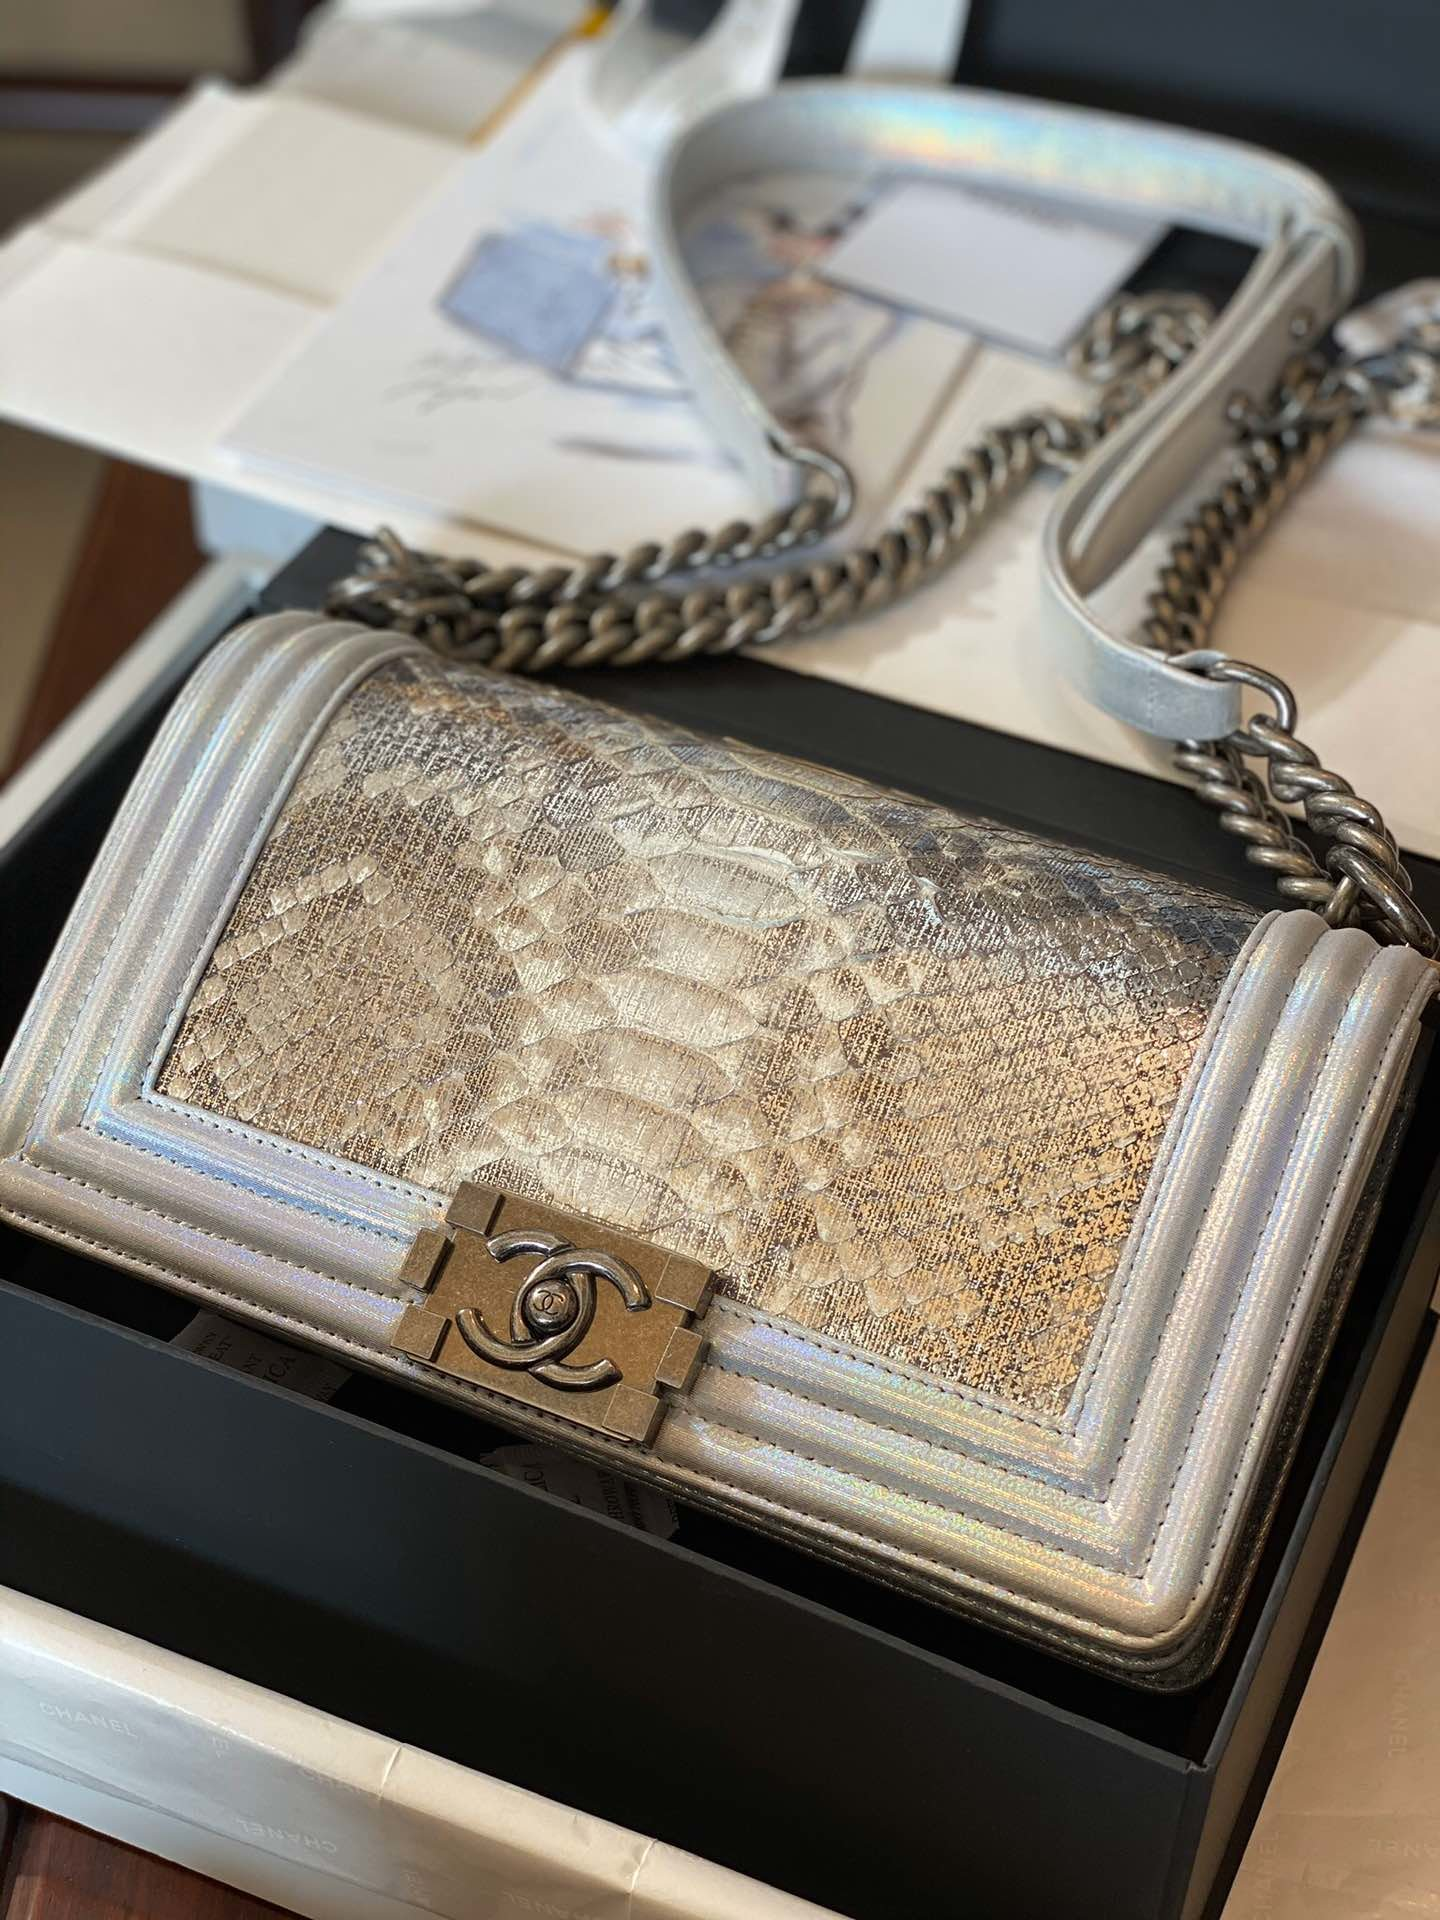 Replica Boy Chanel Bag South African Python Skin with Imported Sheepskin 002